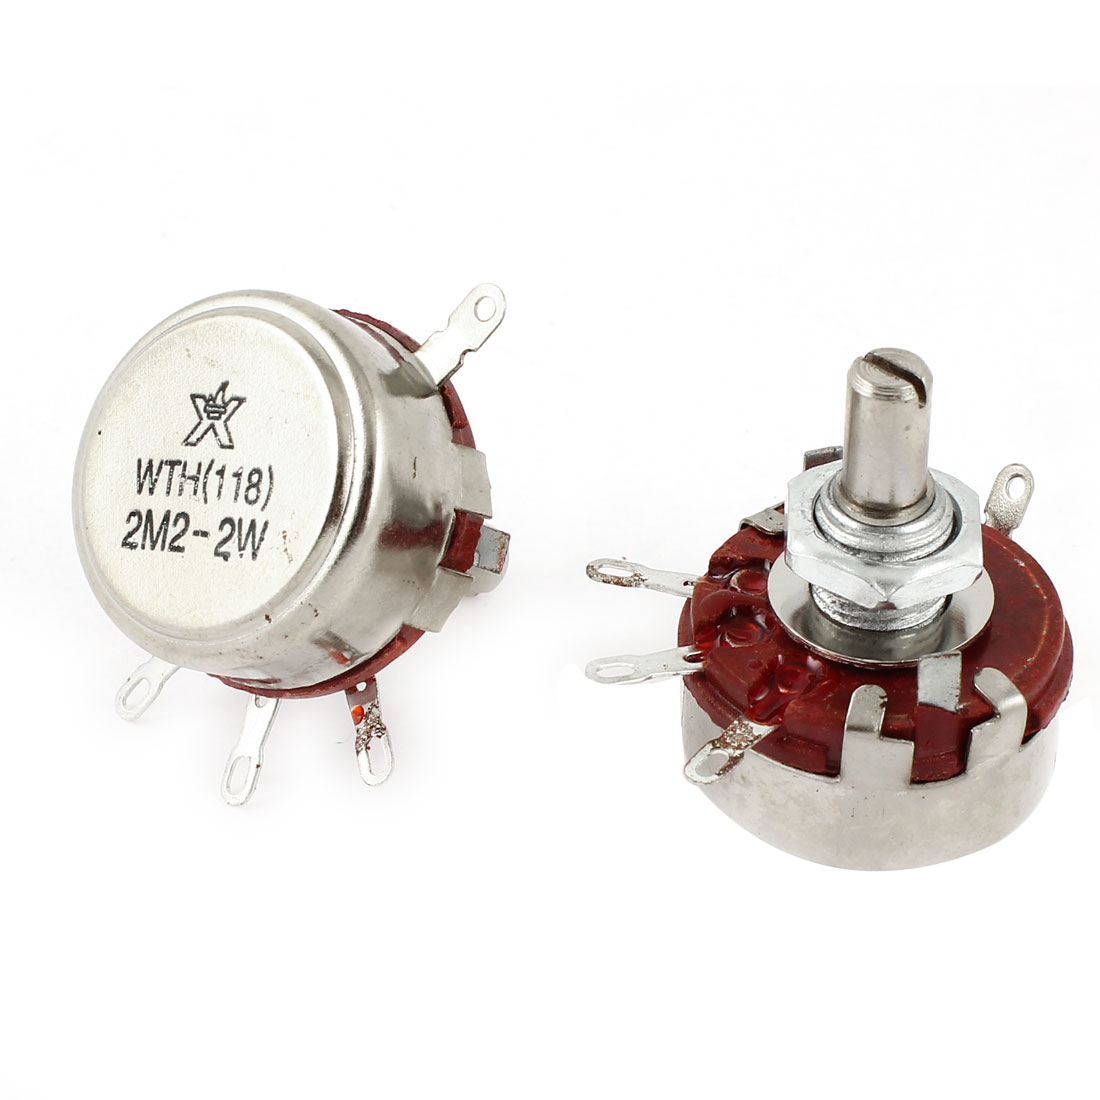 2 Pcs Single Linear Pot Rotary Taper Carbon Potentiometer 2W 2.2M Ohm WTH118